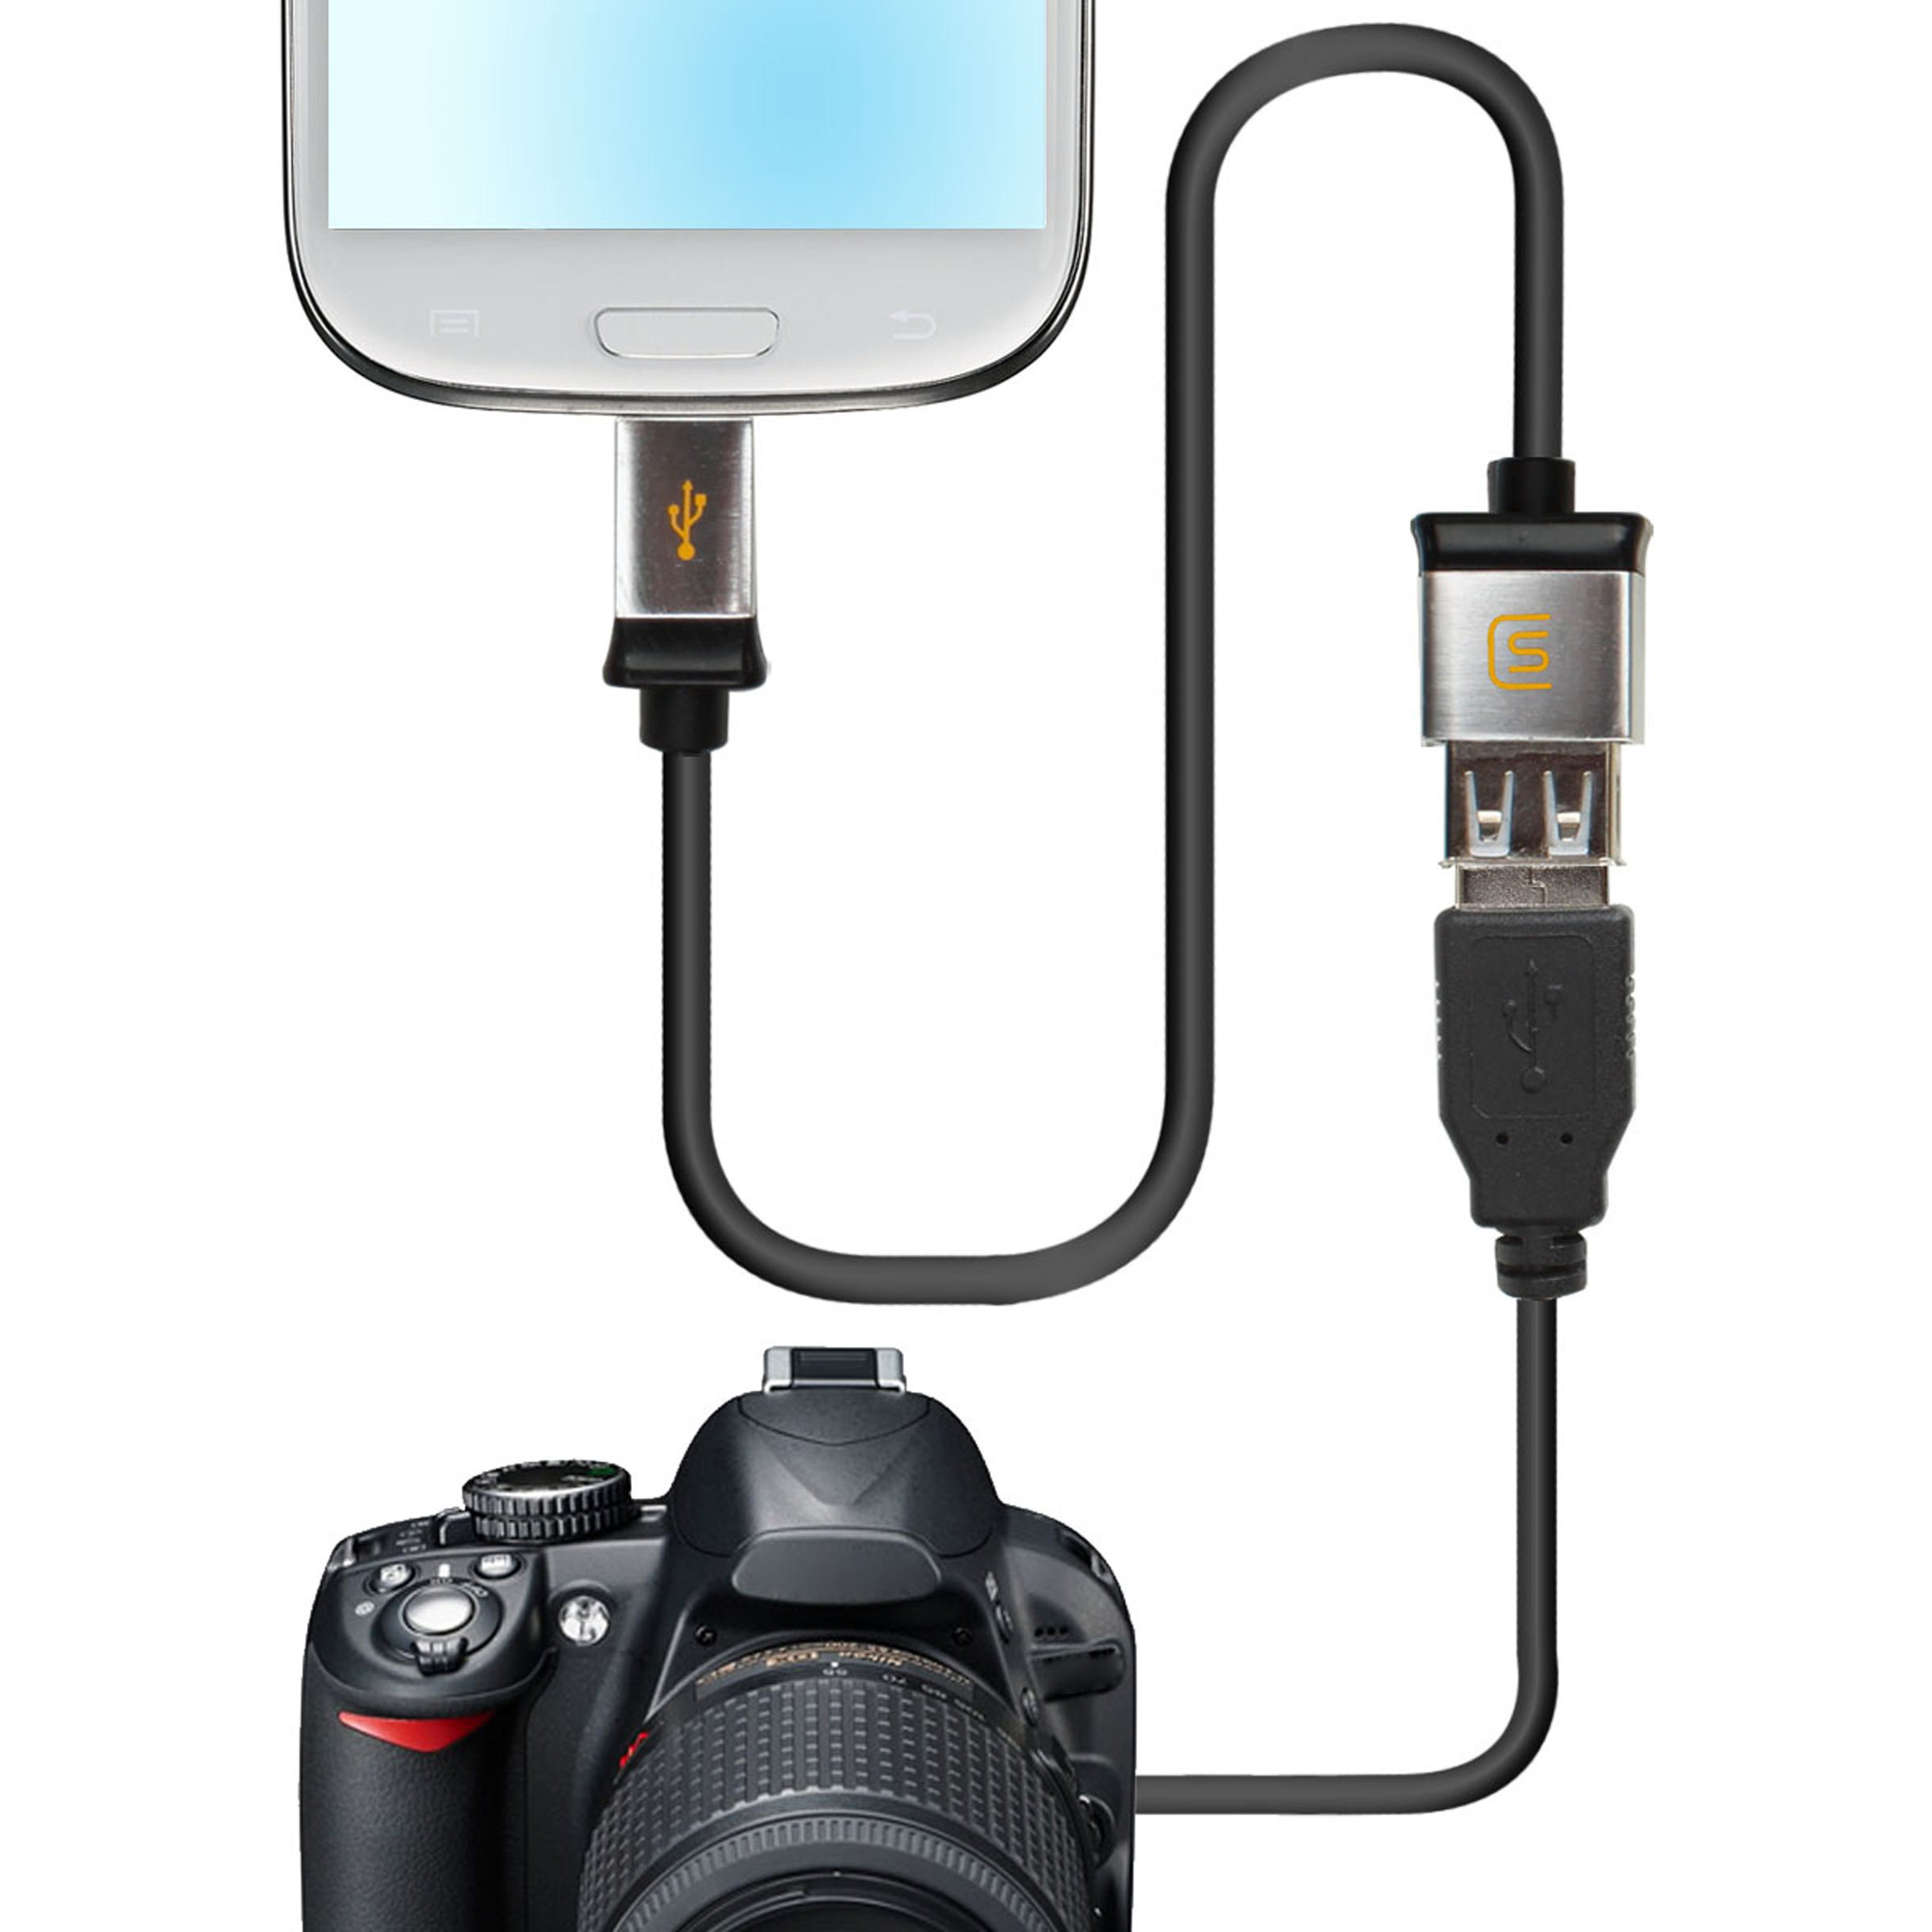 OTG Micro USB to USB 2.0 Male to Female Adapter Cable by DATASTREAM - Connect DSLR Cameras & Flash Drives to Compatible On-The-Go Host Android / Windows Tablets for Remote Controller & Photos Export